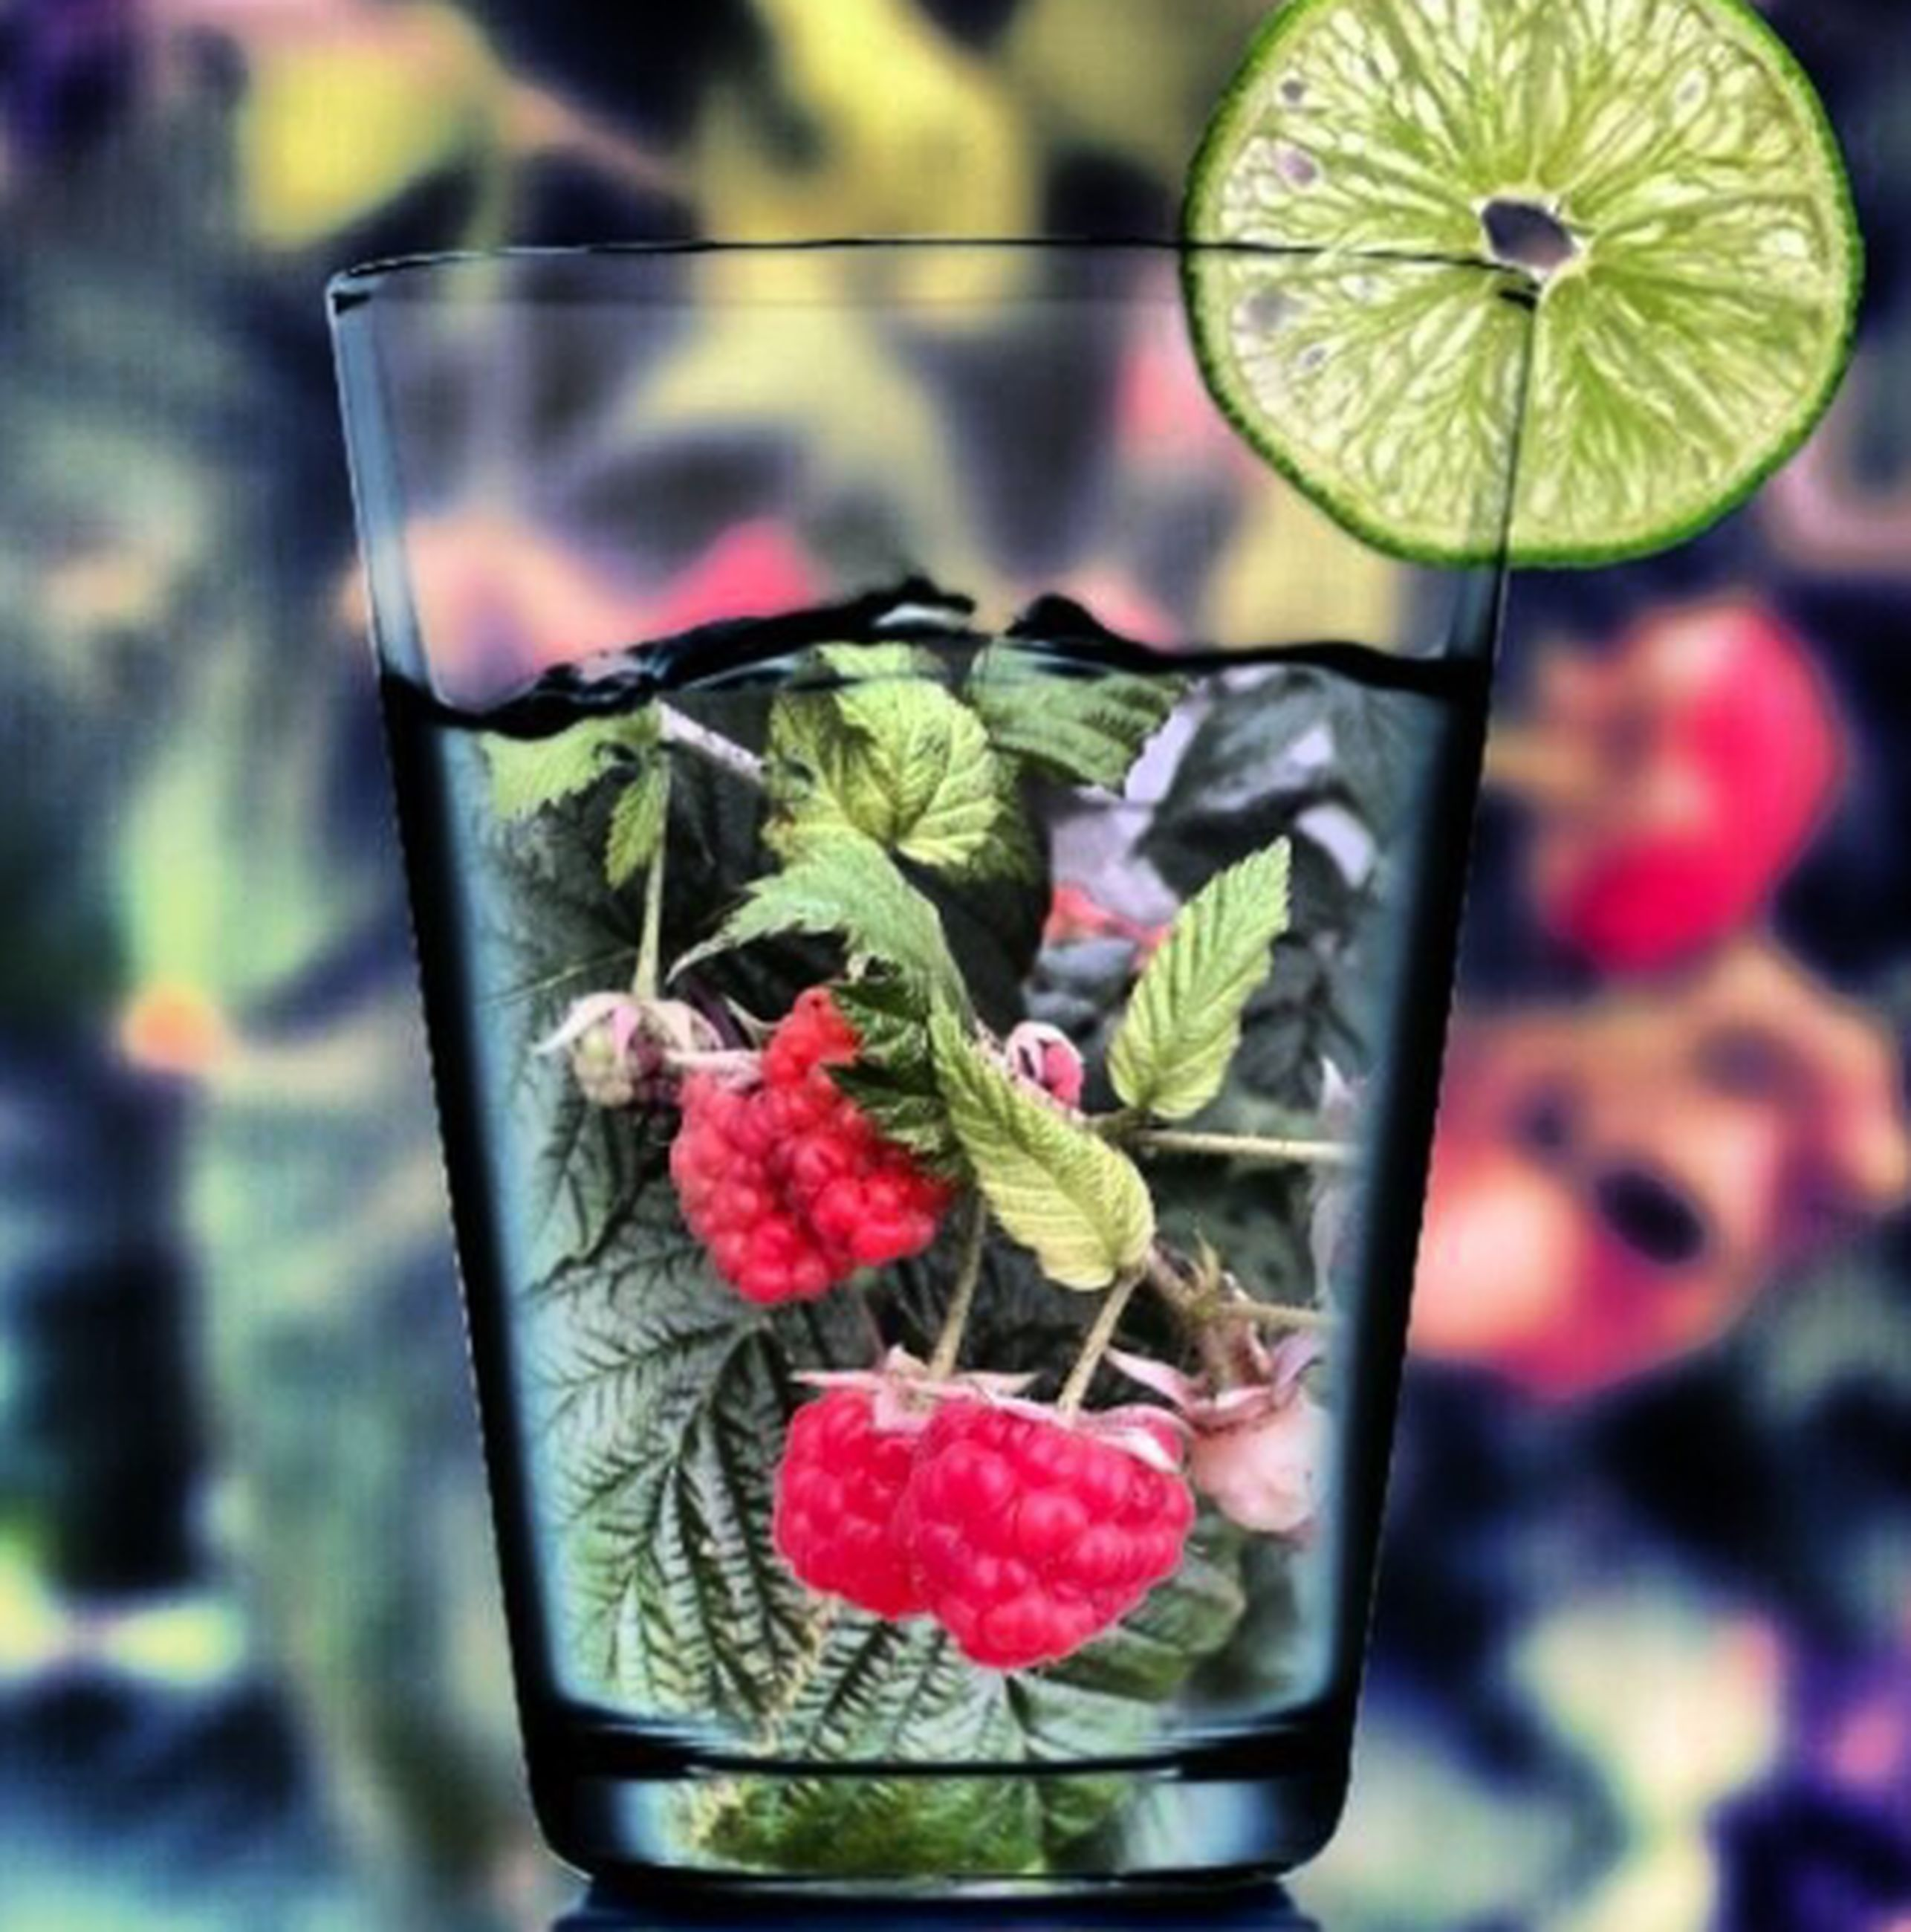 food and drink, freshness, food, healthy eating, fruit, indoors, close-up, still life, focus on foreground, table, ready-to-eat, red, strawberry, glass - material, organic, drinking glass, indulgence, selective focus, vegetable, leaf